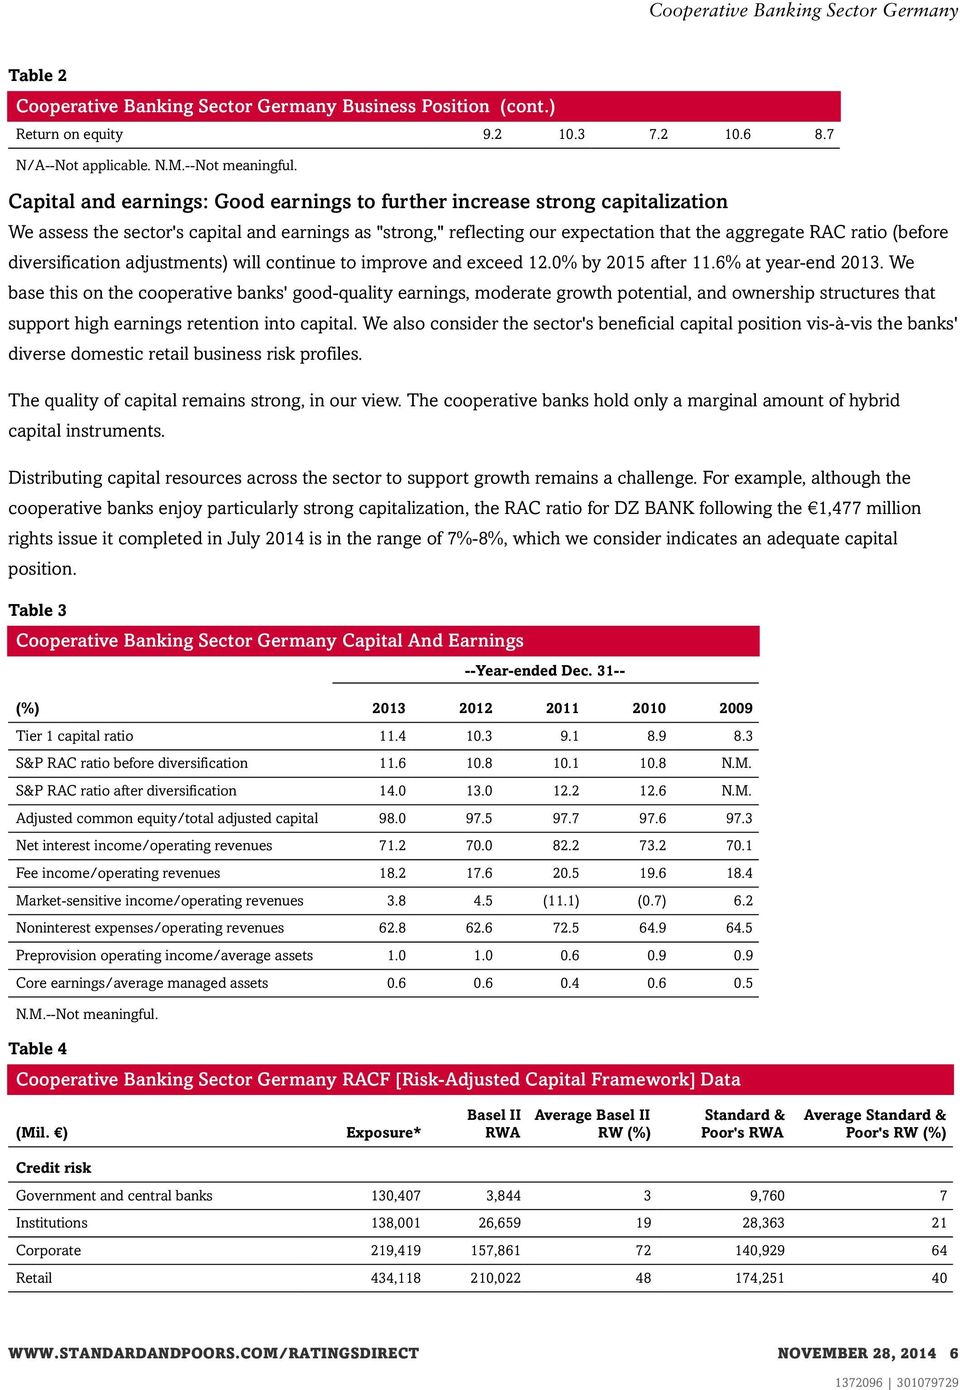 diversification adjustments) will continue to improve and exceed 12.0% by 2015 after 11.6% at year-end 2013.